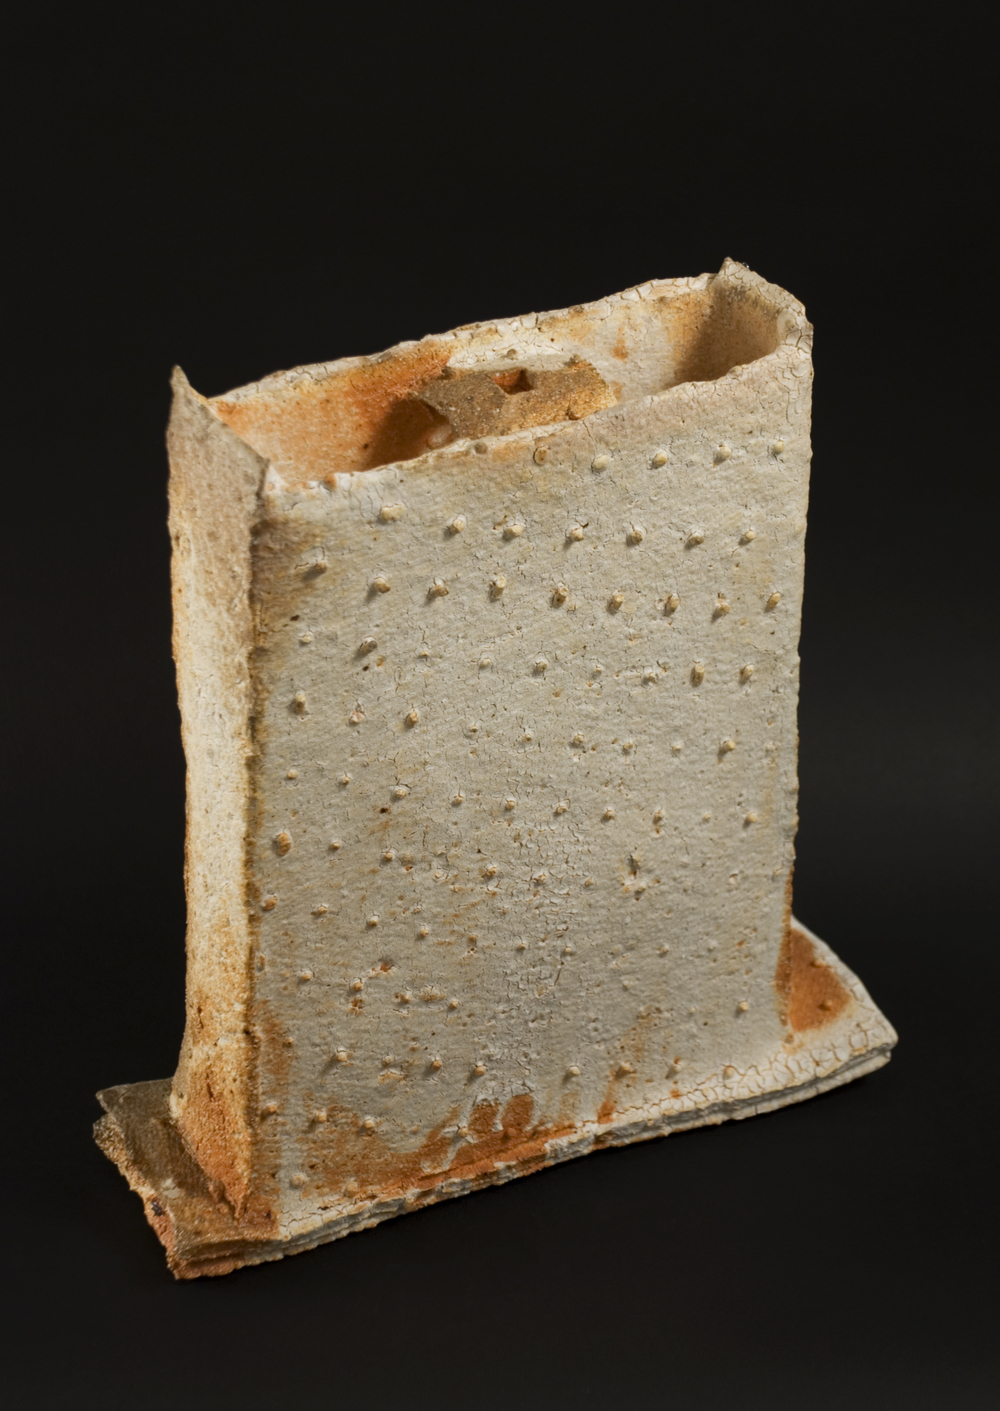 Sandy Lockwood    The Keep Series  , 2008 Woodfired, salt glazed  12.75 x 4.25 x 4.25 inches  /  32.4 x 10.8 x 10.8 cm  /  SAL 2